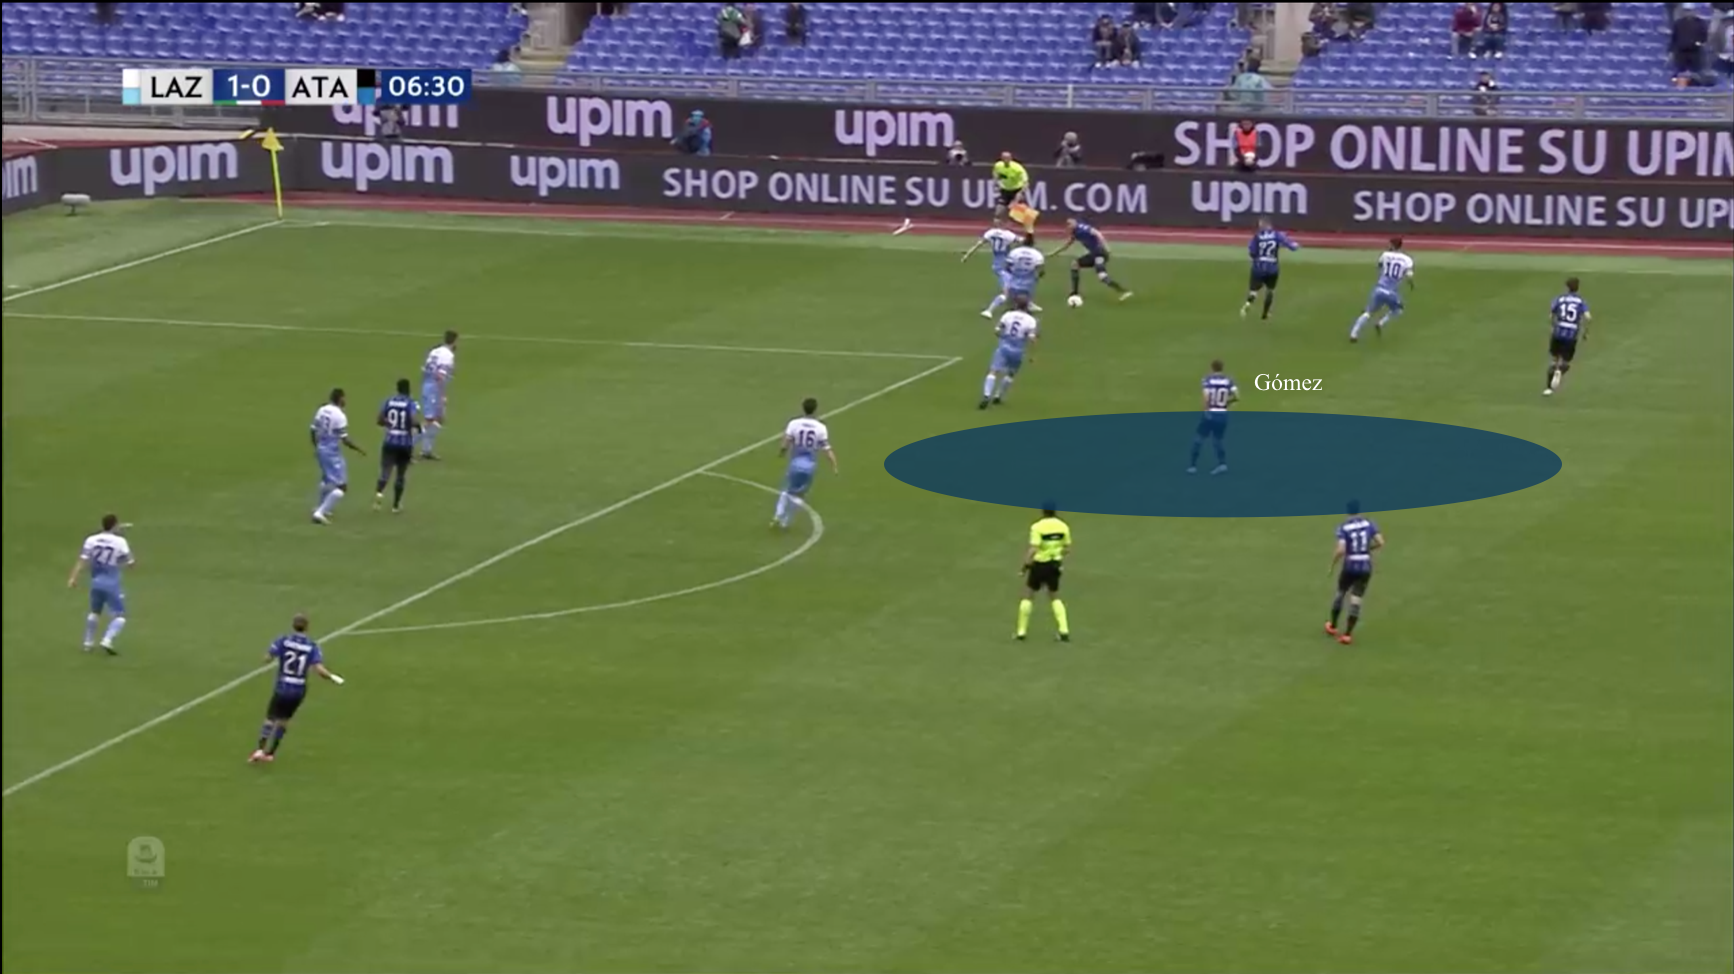 Serie A 2018/19 Tactical Analysis Statistics: Lazio vs Atalanta